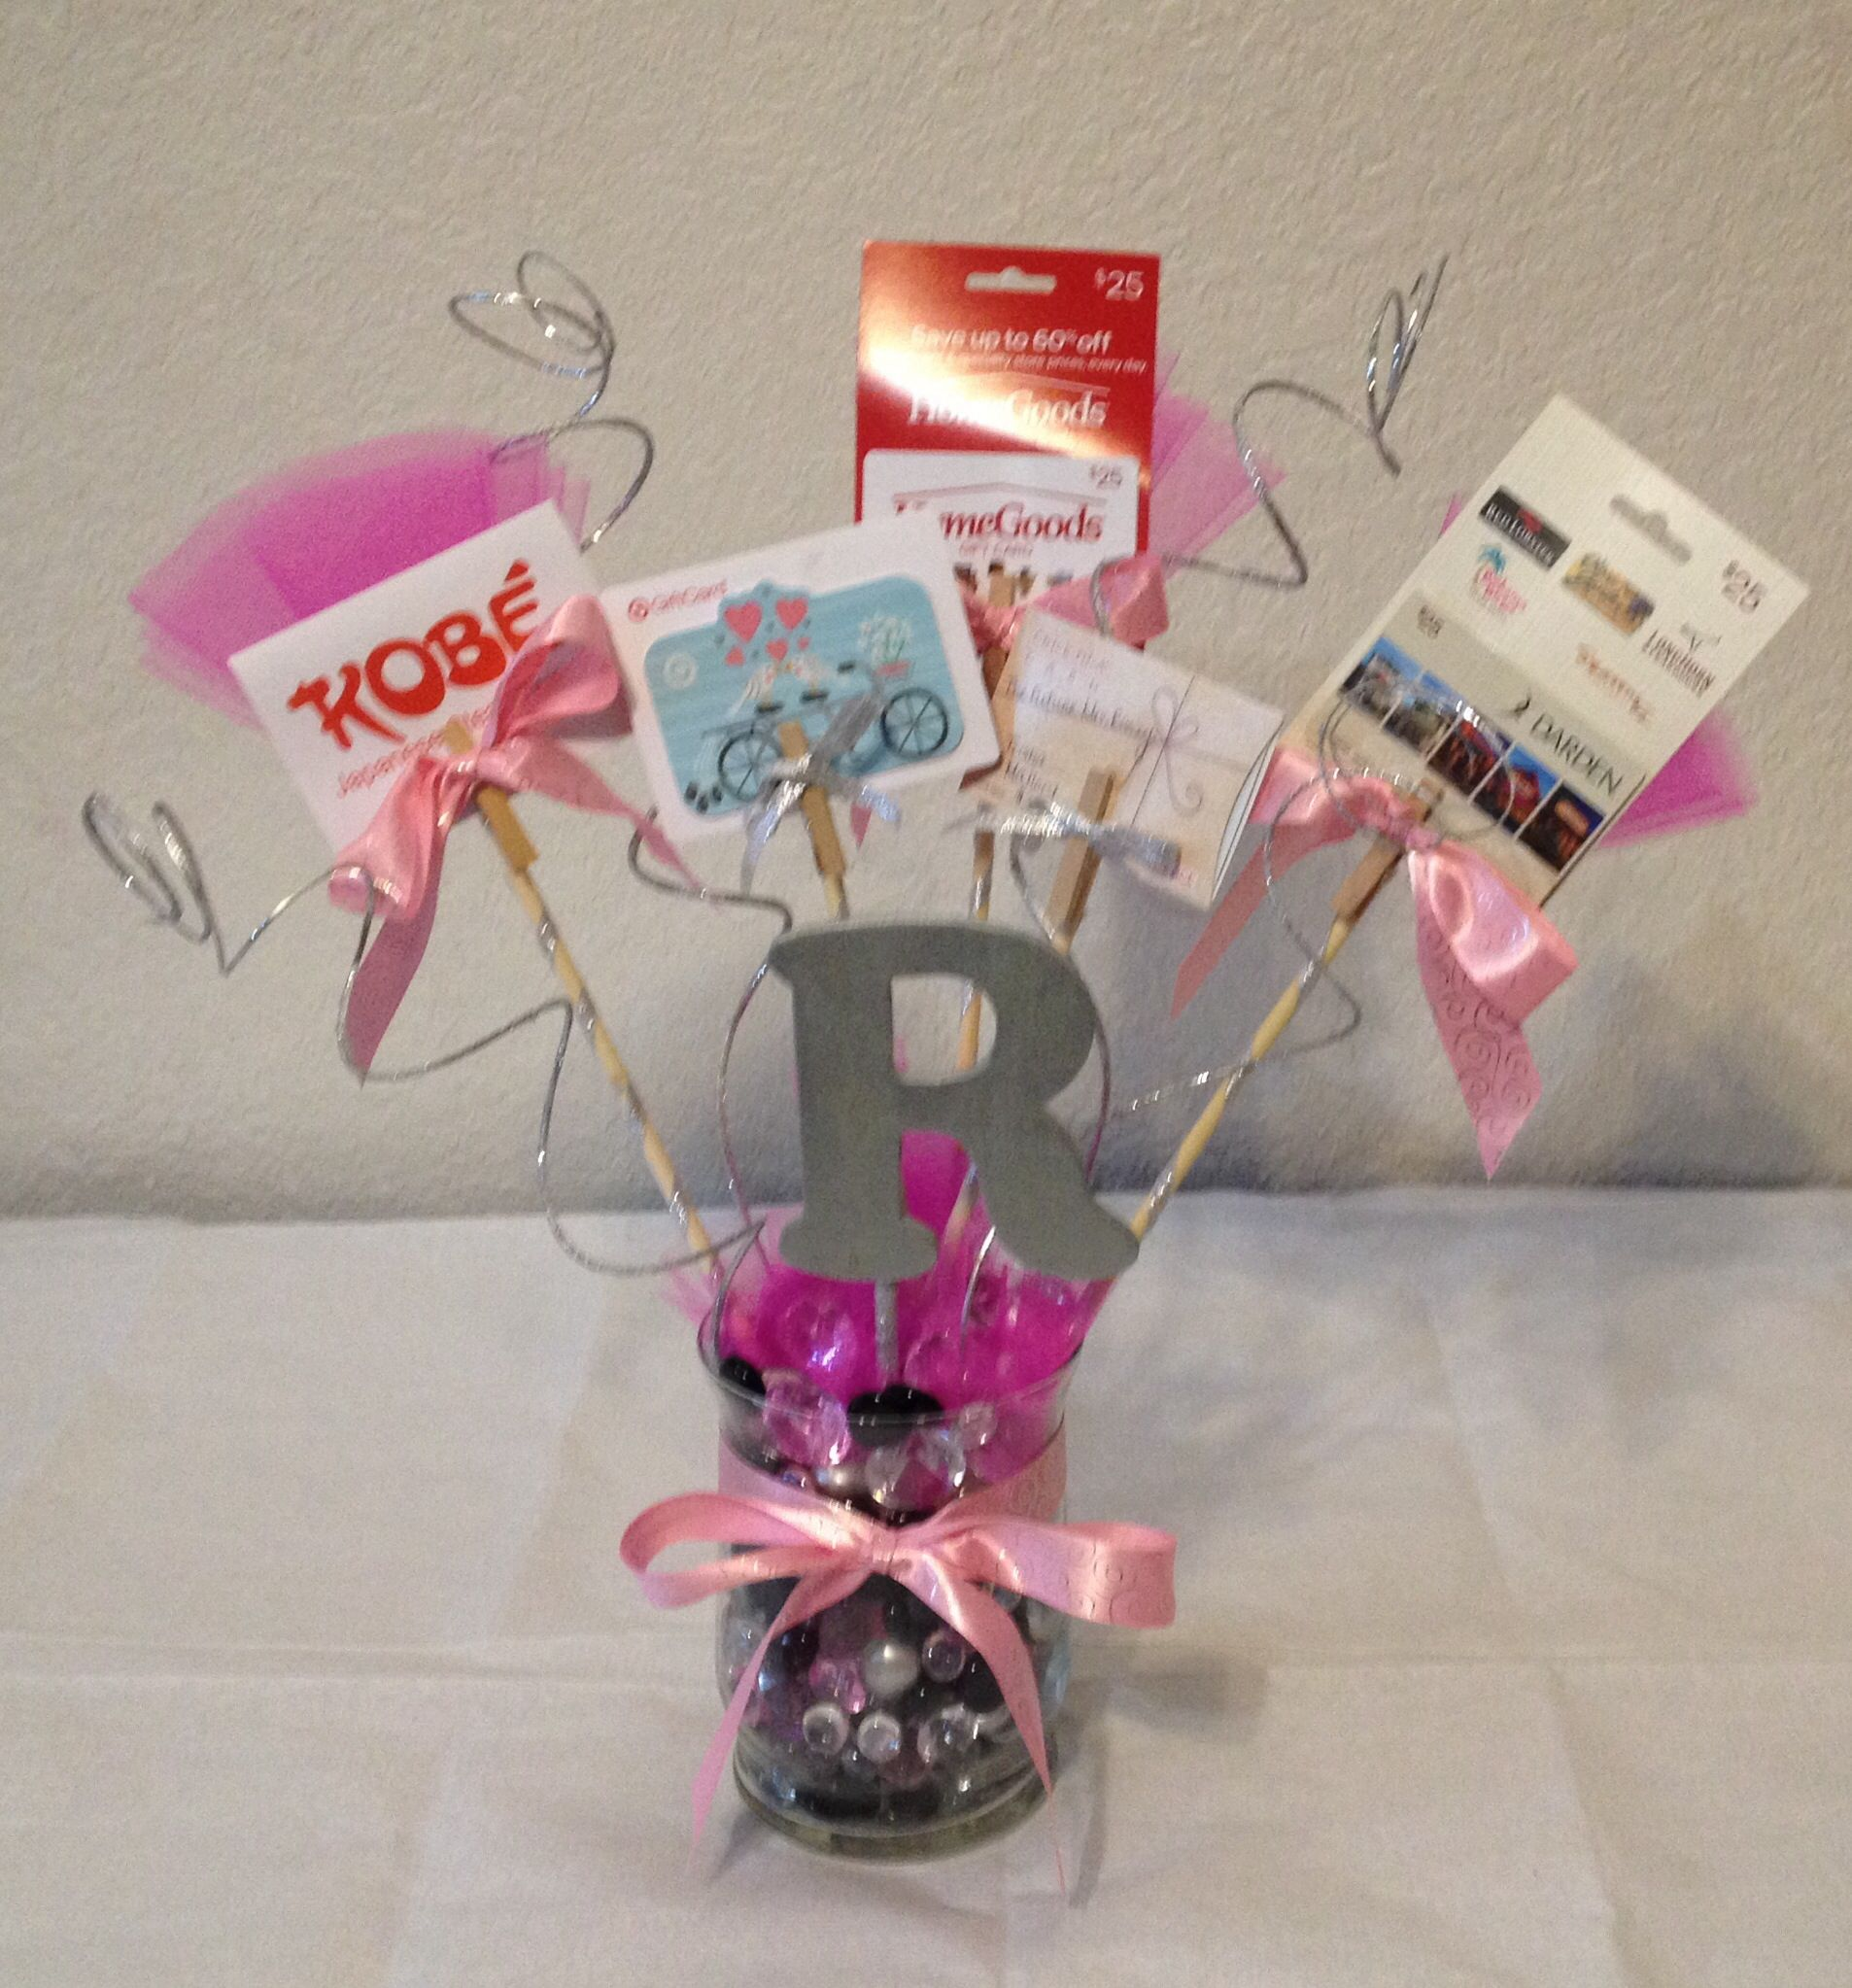 Bridal Unique Gift Ideas: Bridal Shower Gift Card Bouquet DIY Materials Used: Glass